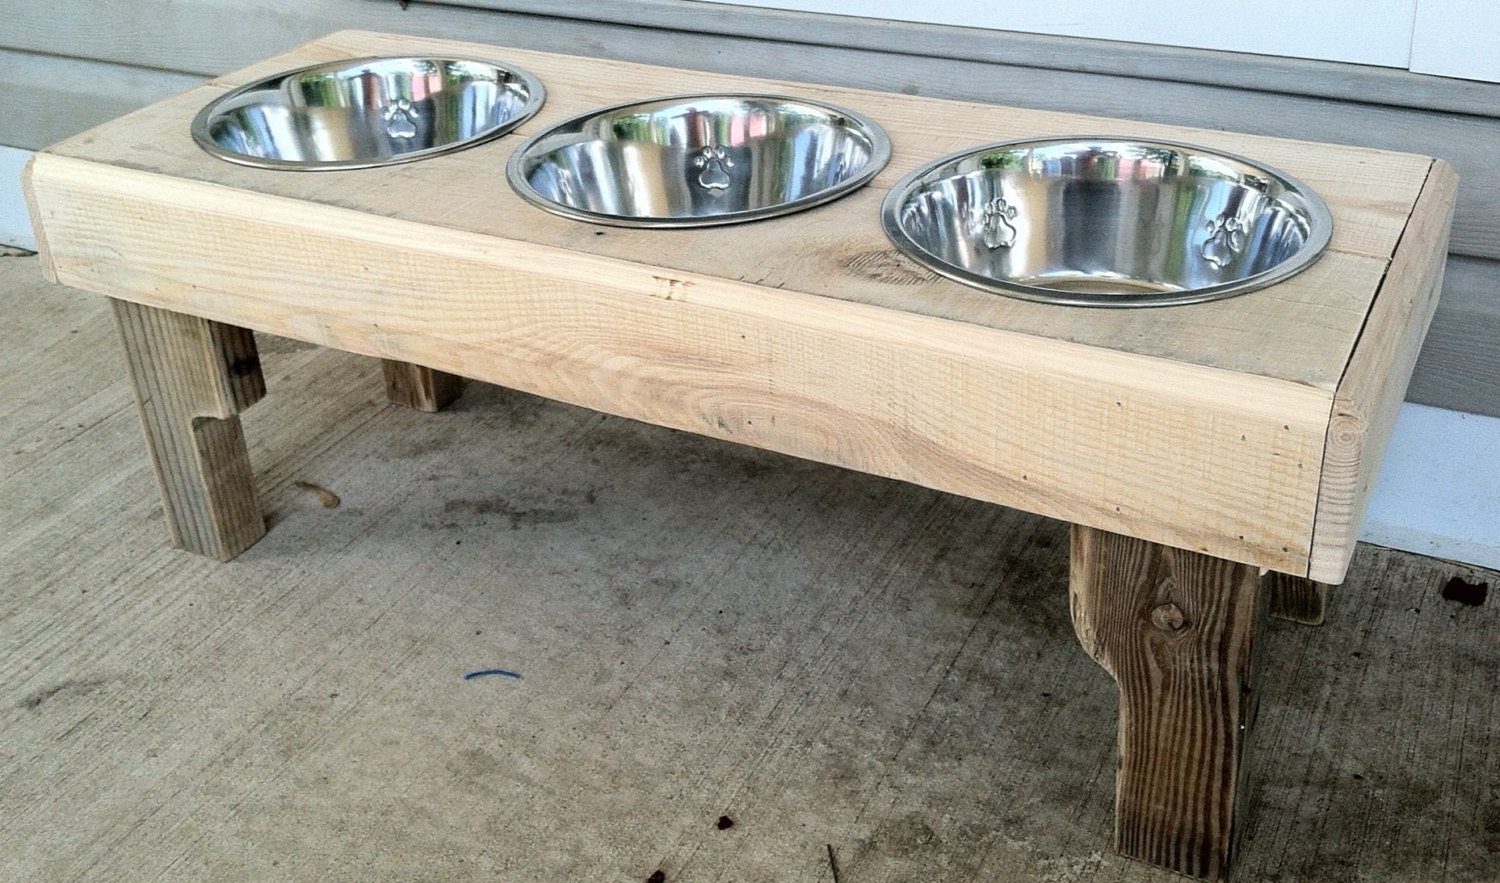 Reclaimed rustic pallet furniture dog bowl stand by Kustomwood